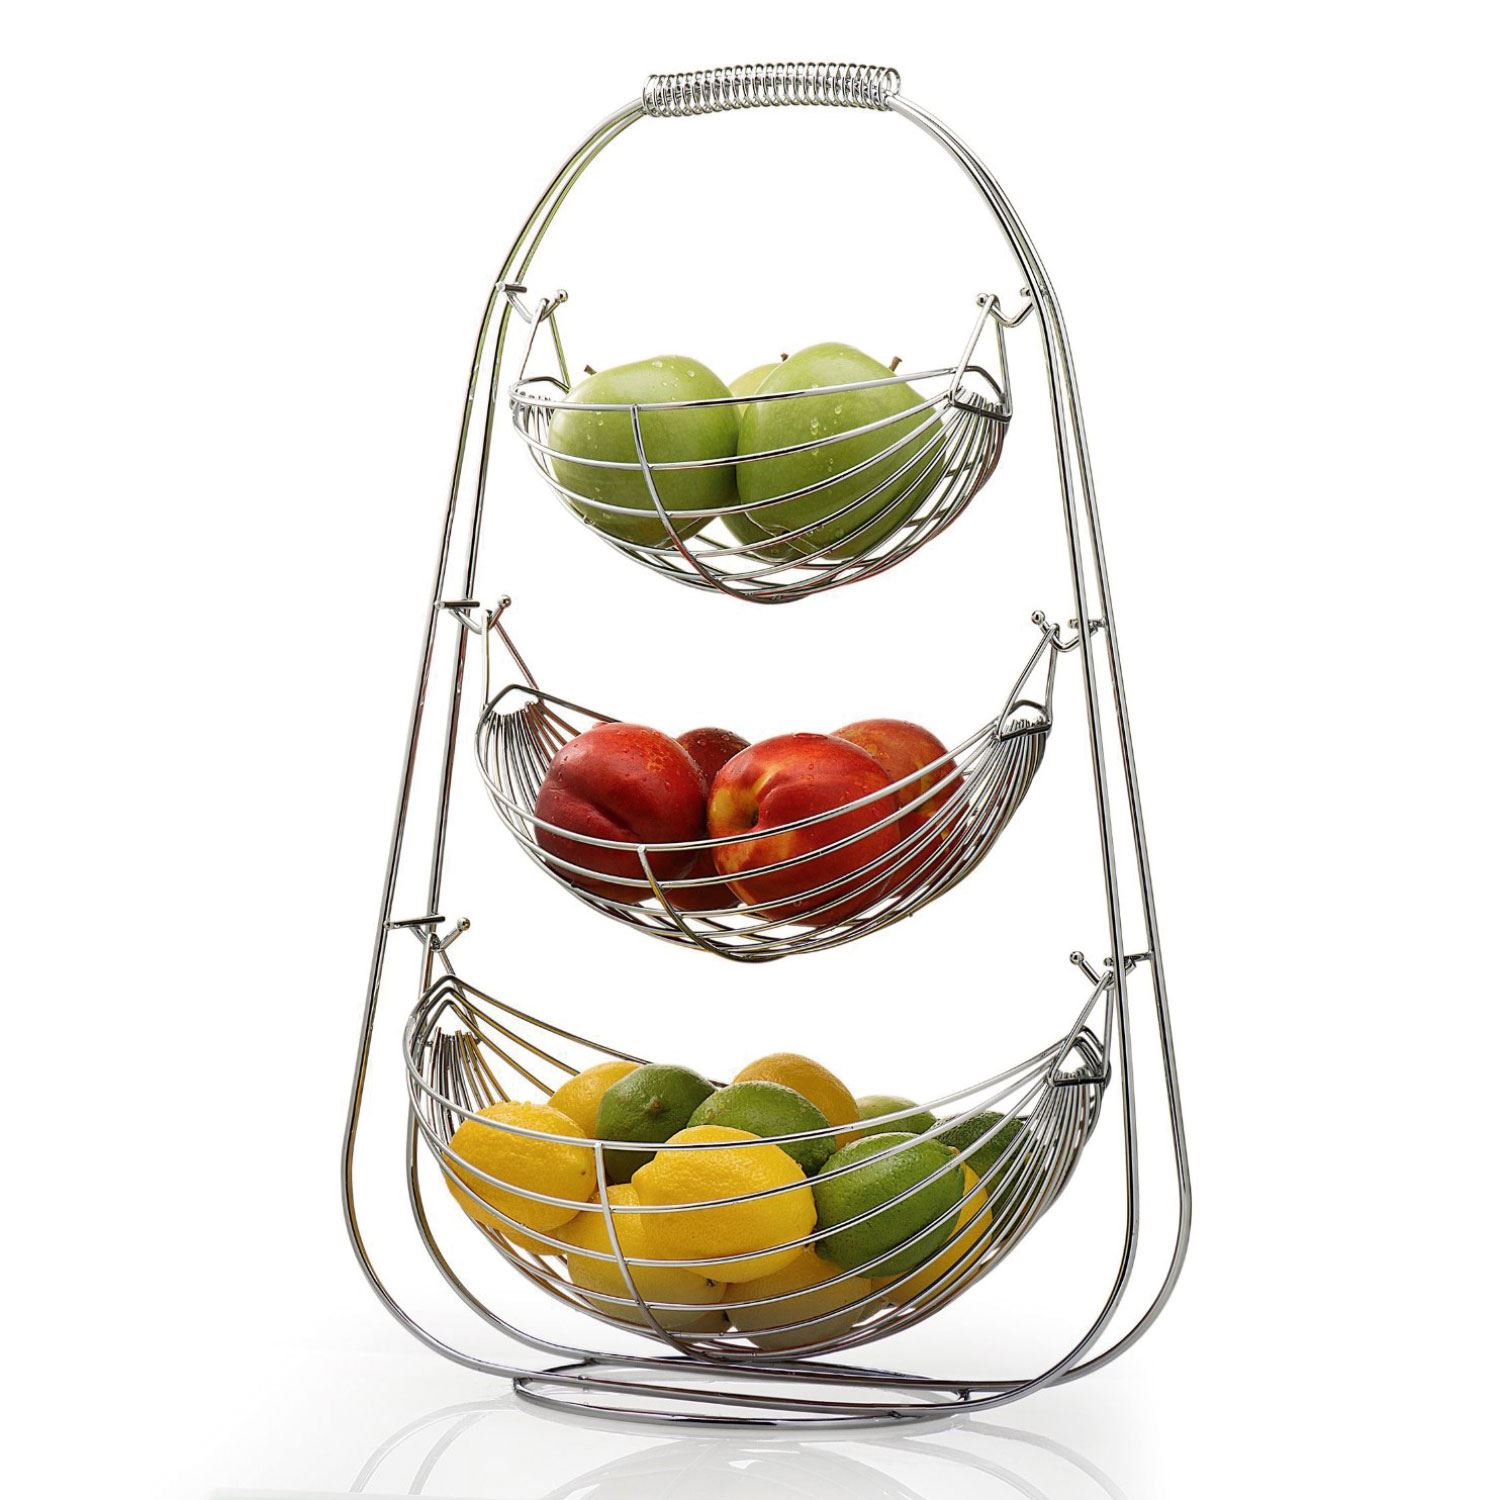 High Quality ... Wire Fruit Vegetable Basket Hammock Bowl Kitchen Storage Stand New.  Image Result For Mobile Responsive Images